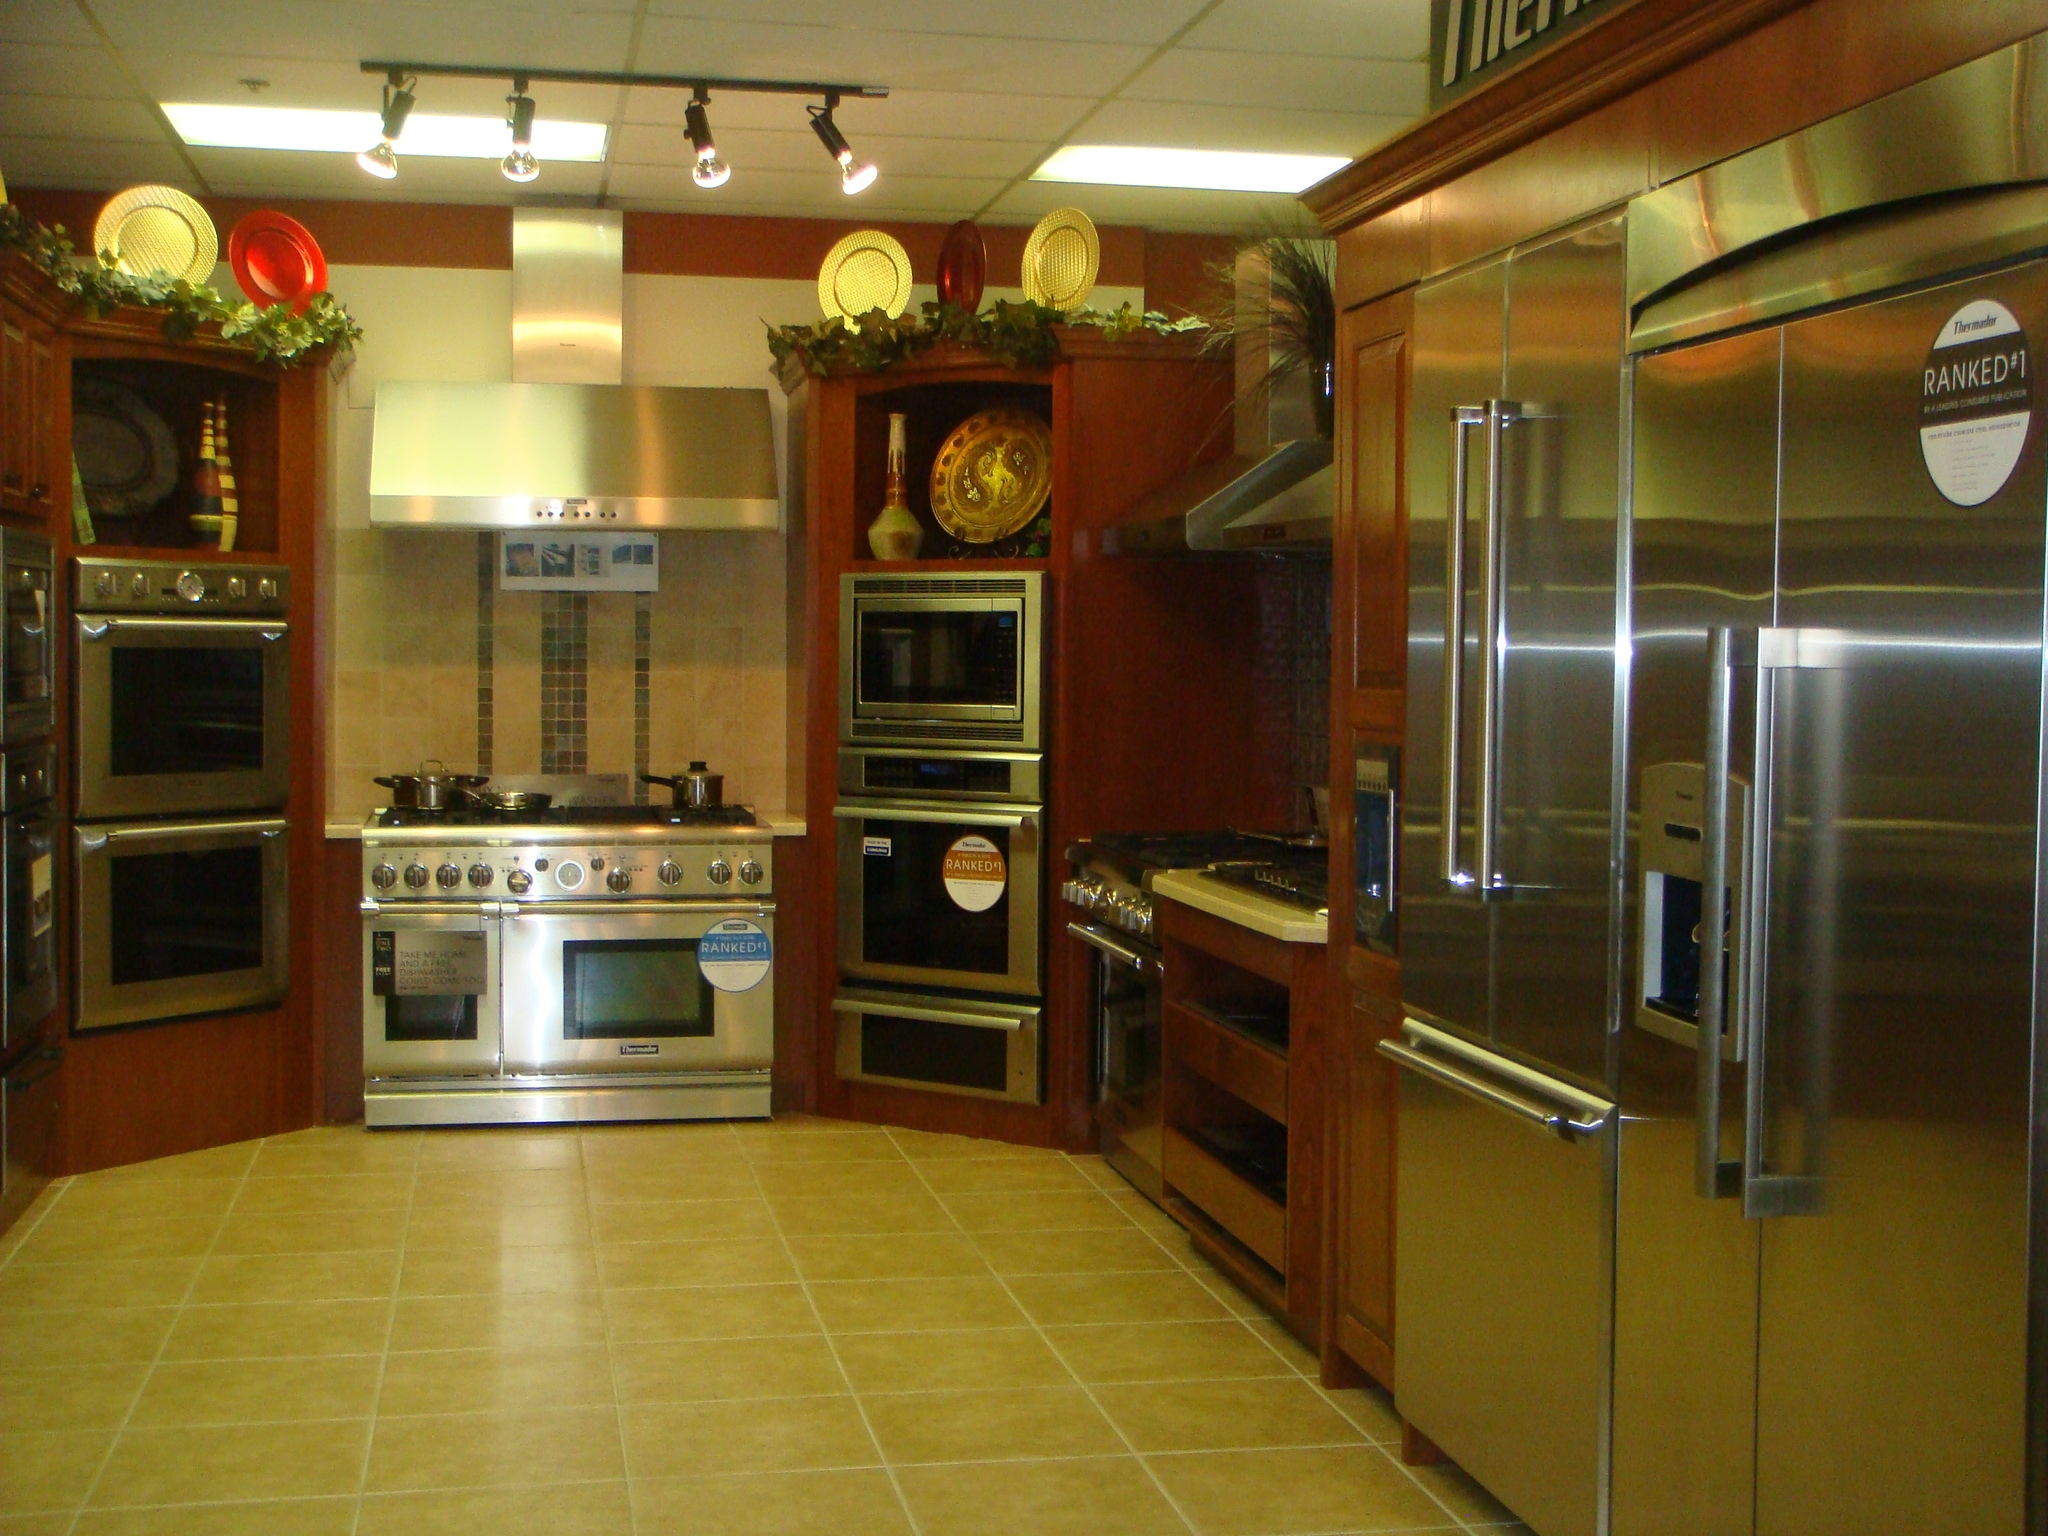 Queen City Tv & Appliances Showroom